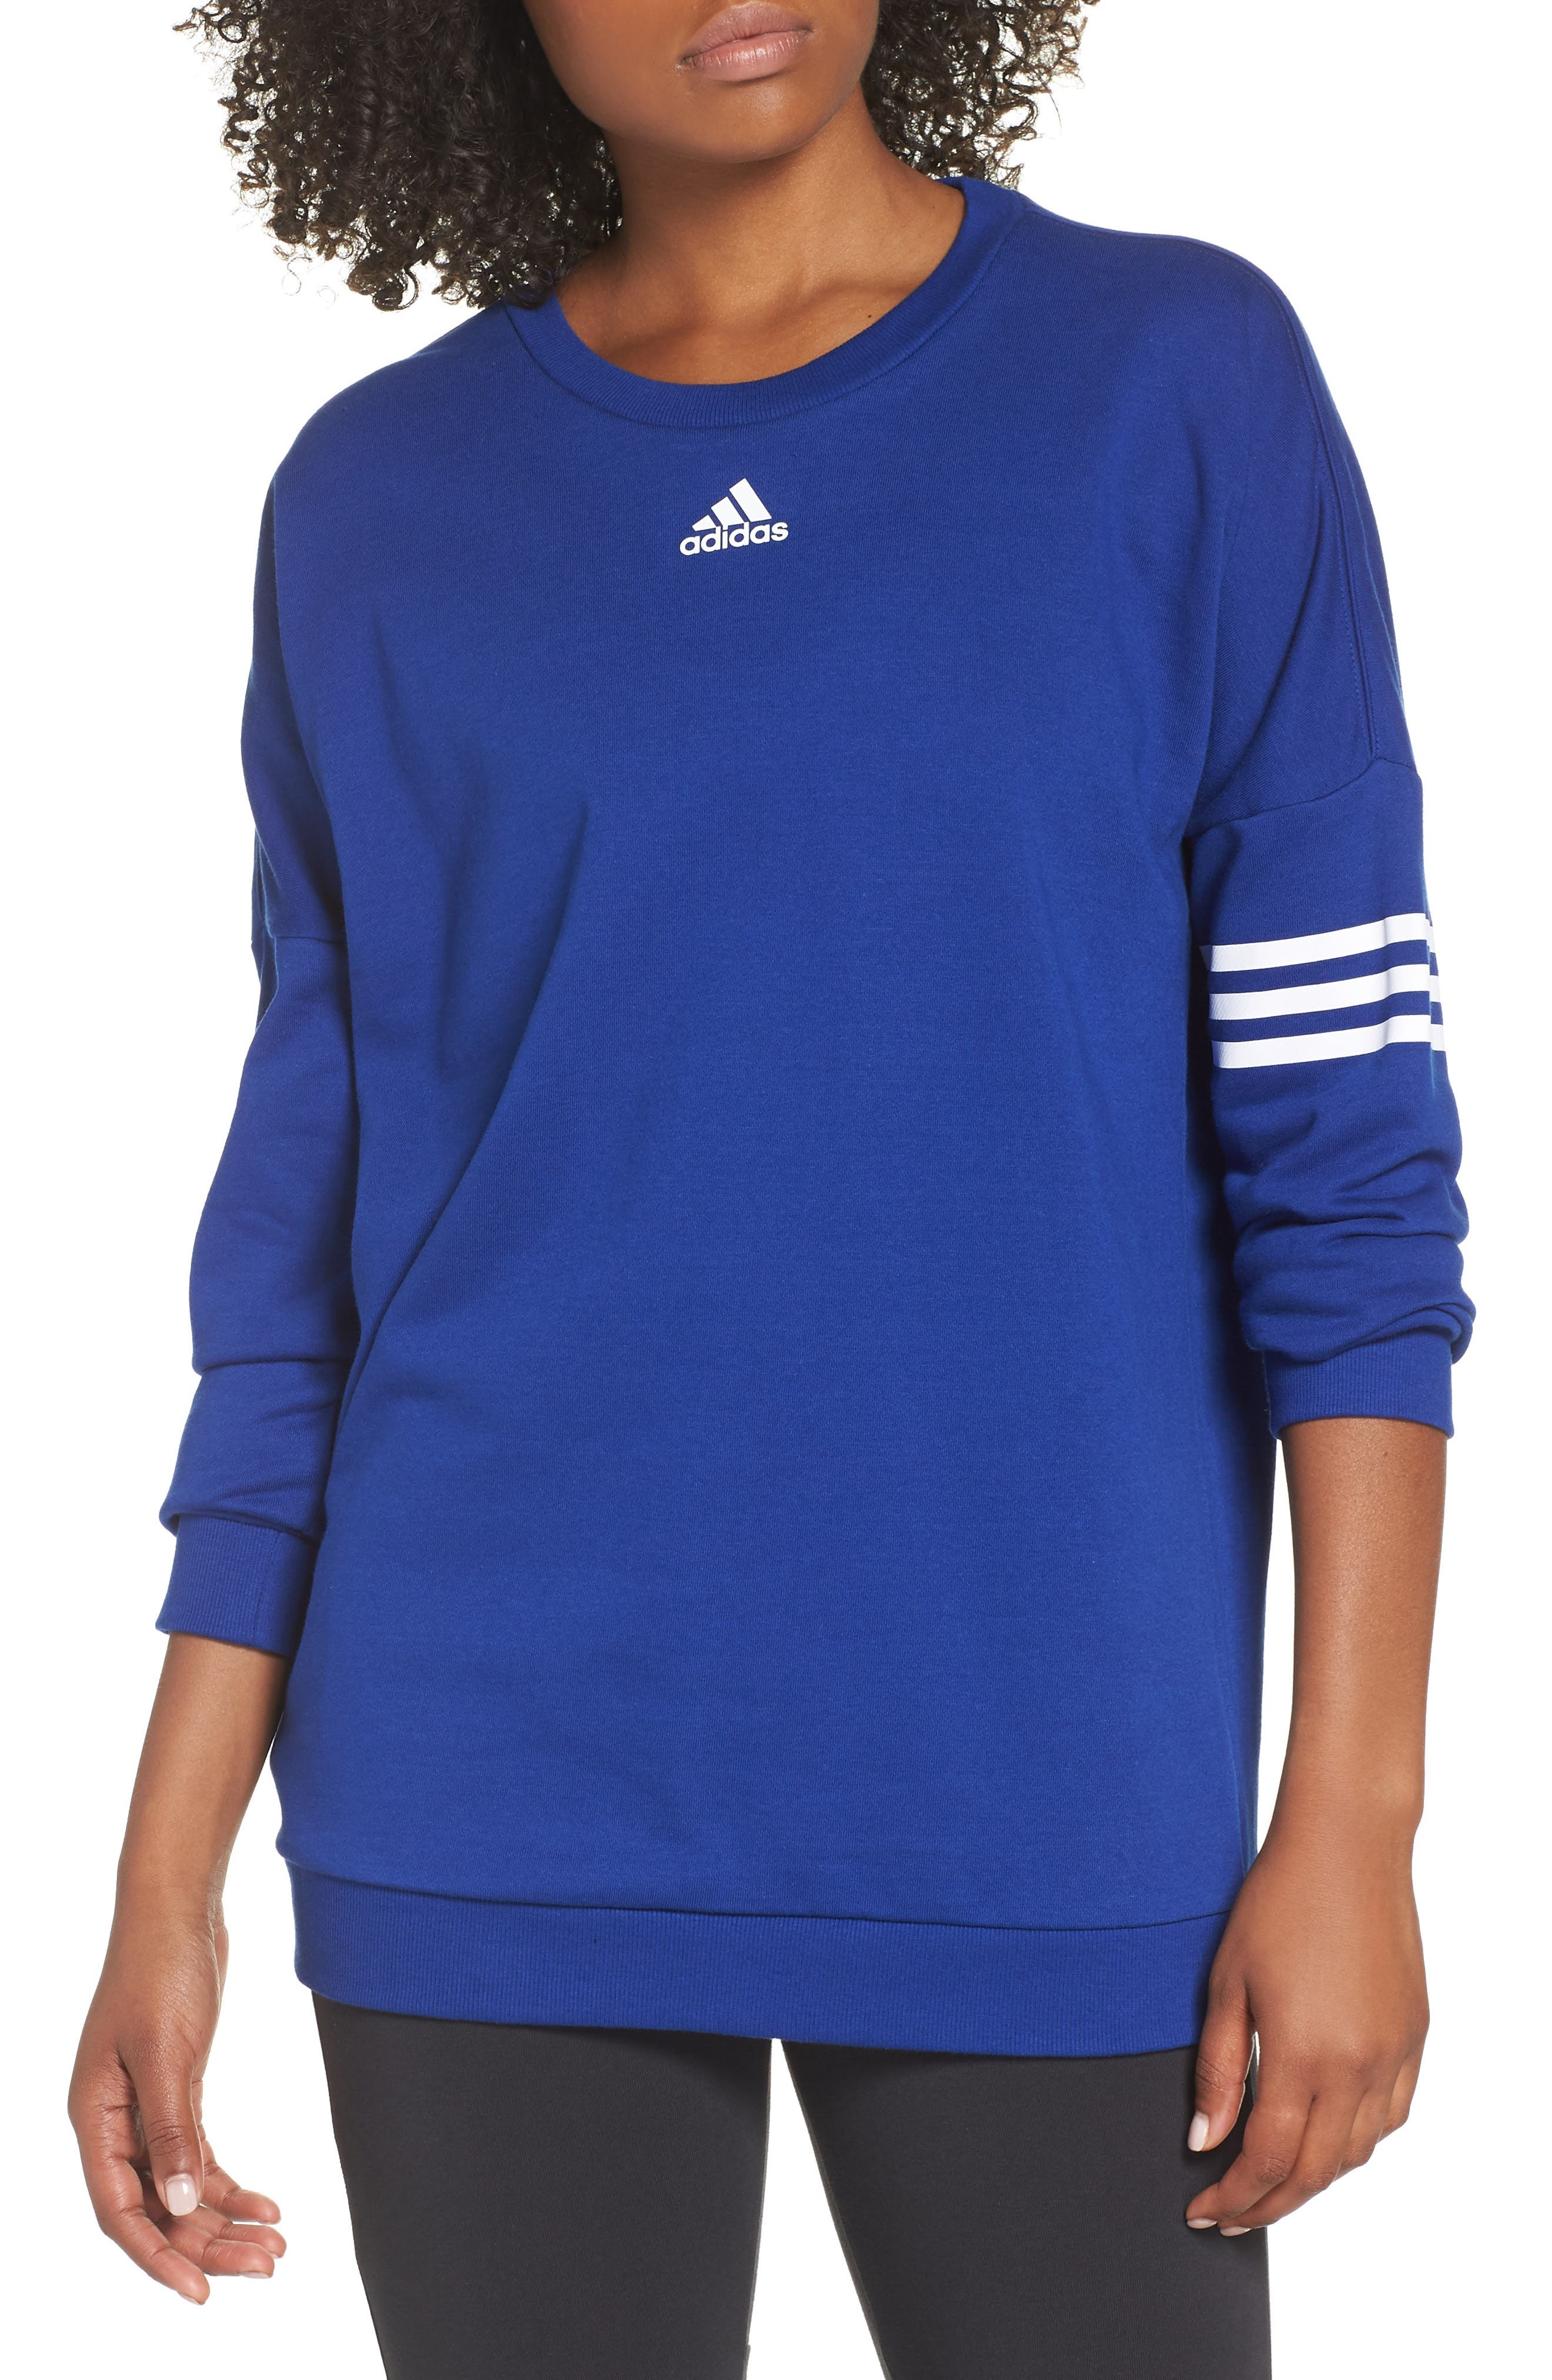 adidas Oversize Crewneck Sweatshirt,                             Main thumbnail 1, color,                             MYSTERY INK